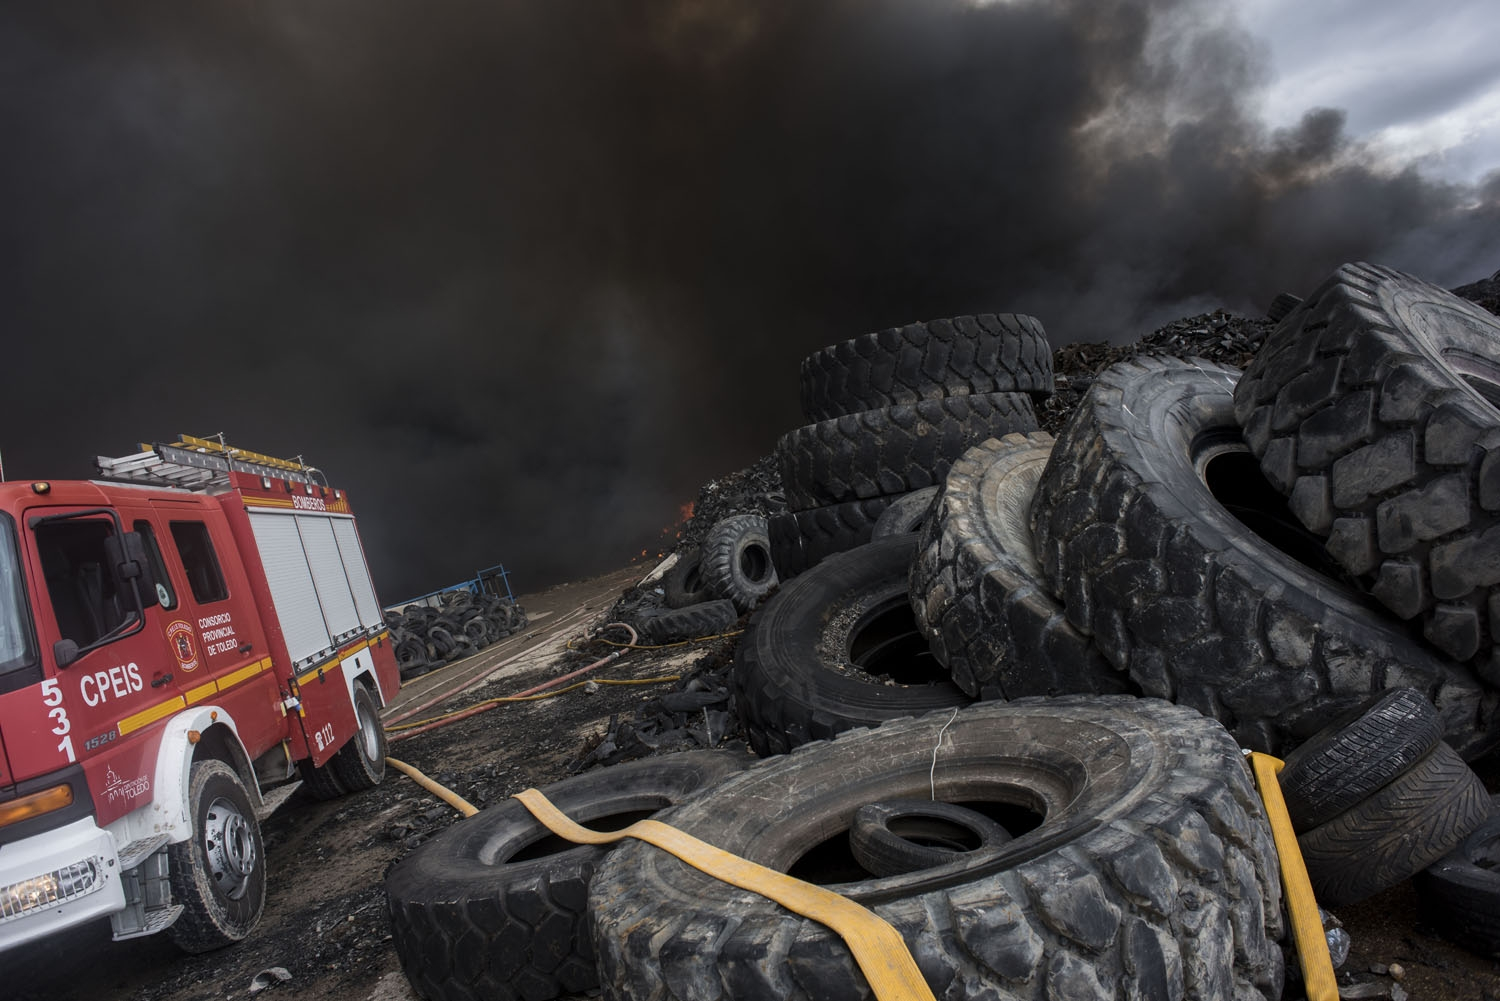 Clouds of dark smoke cover the sky as a fire truck works among piles of tyres in an uncontrolled dump near the town of Sesena, after a fire brokeout early on May 13, 2016